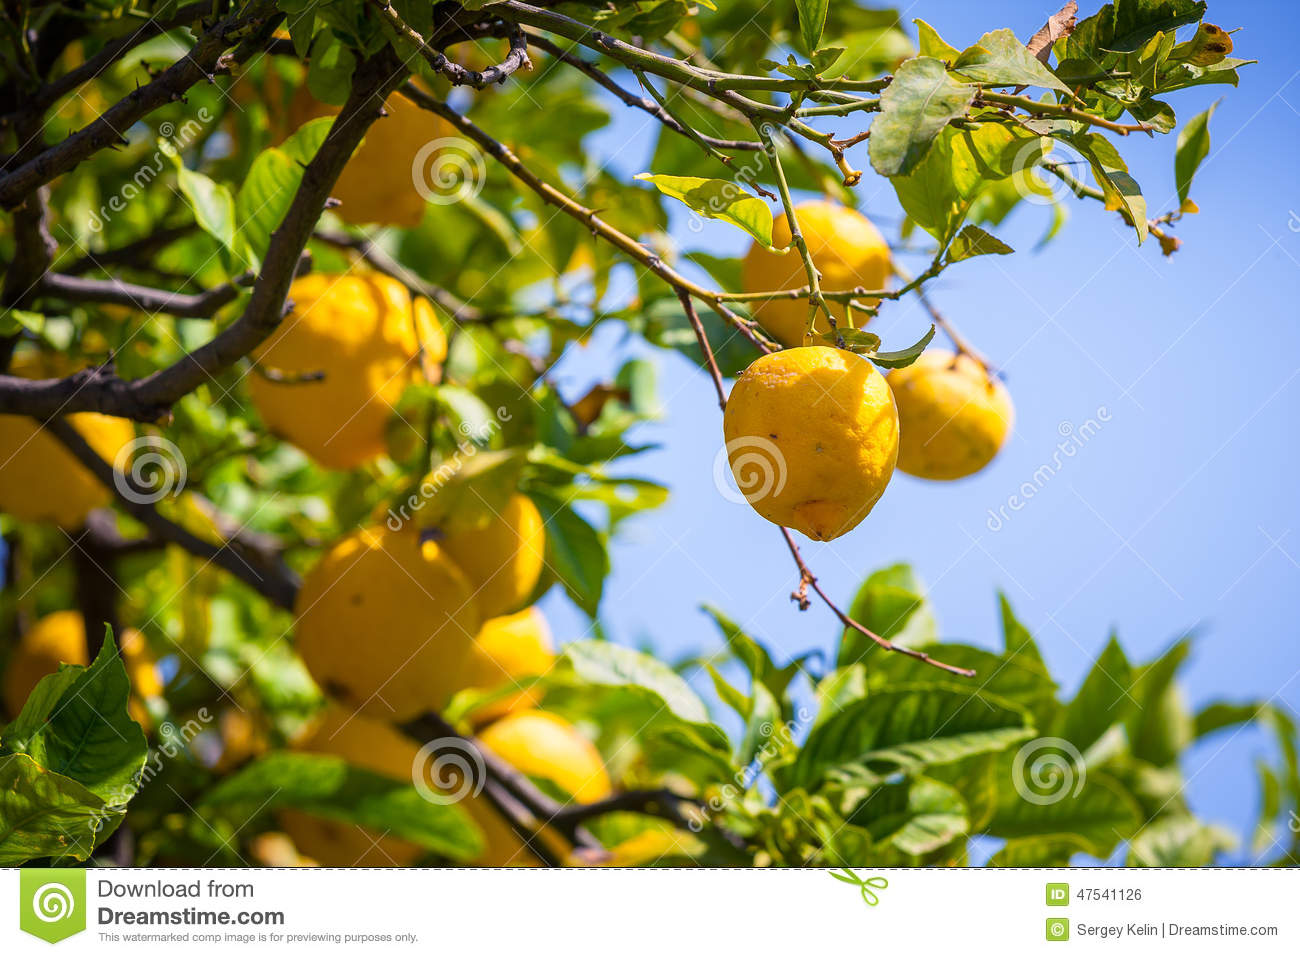 Pictures Of Lemon Trees In Italy